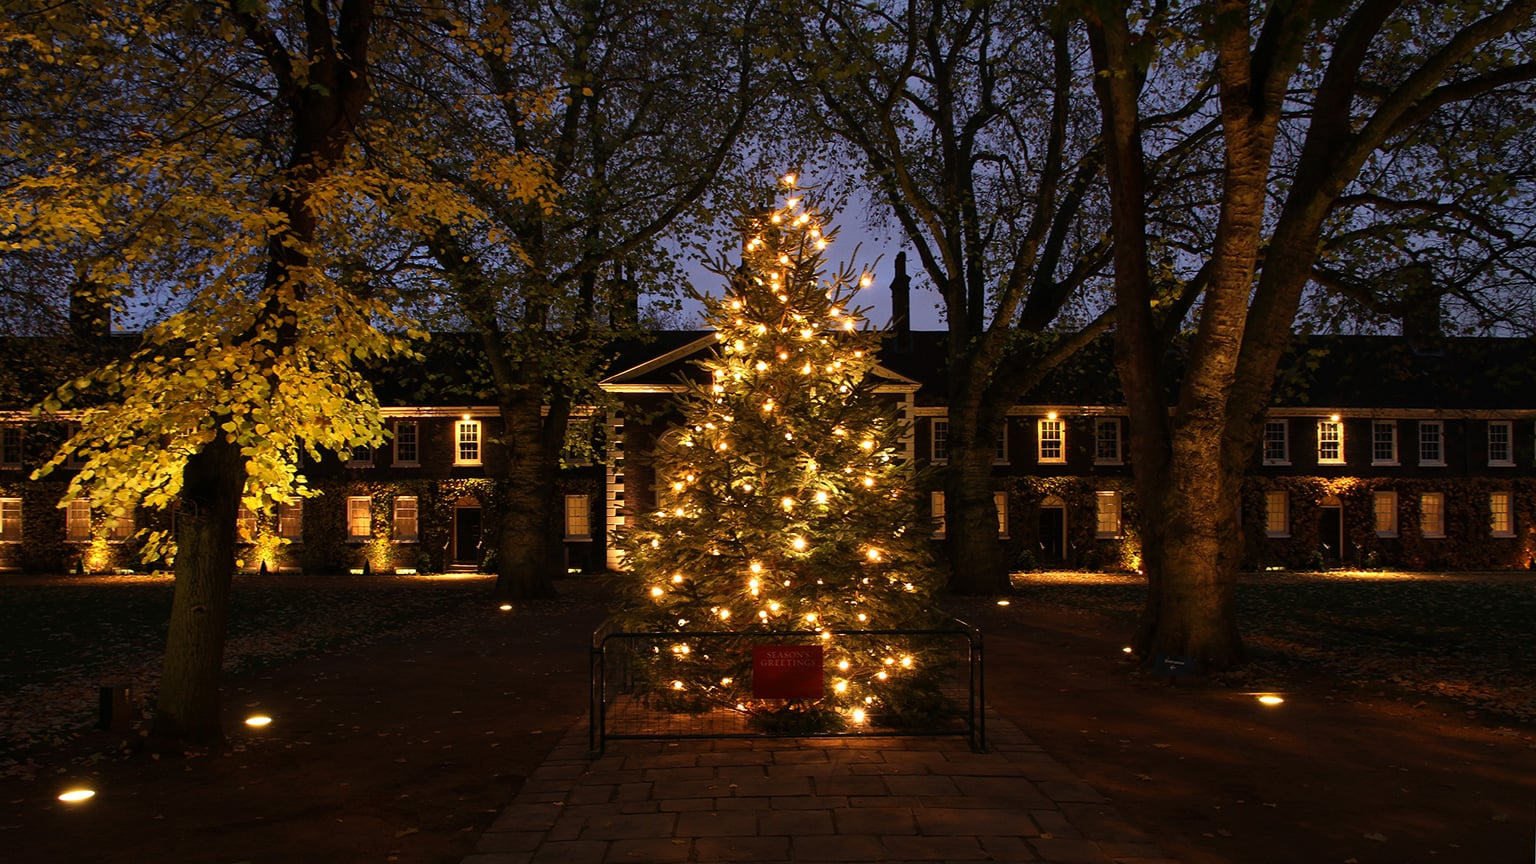 Exterior of the Geffrye during Christmas Past